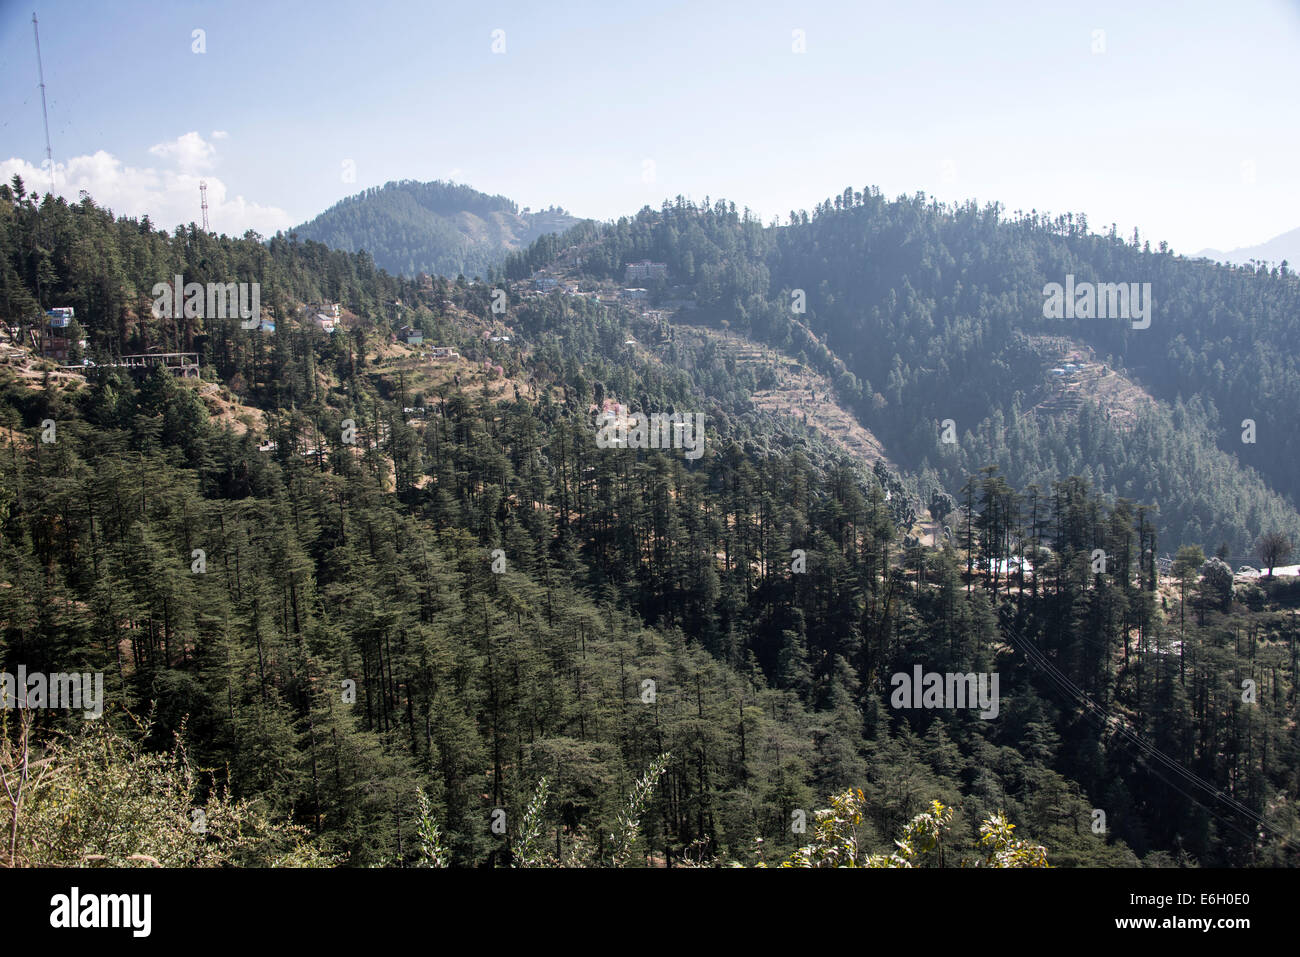 Pine forests in the Himalayan foothills in Himachal Pradesh,India - Stock Image